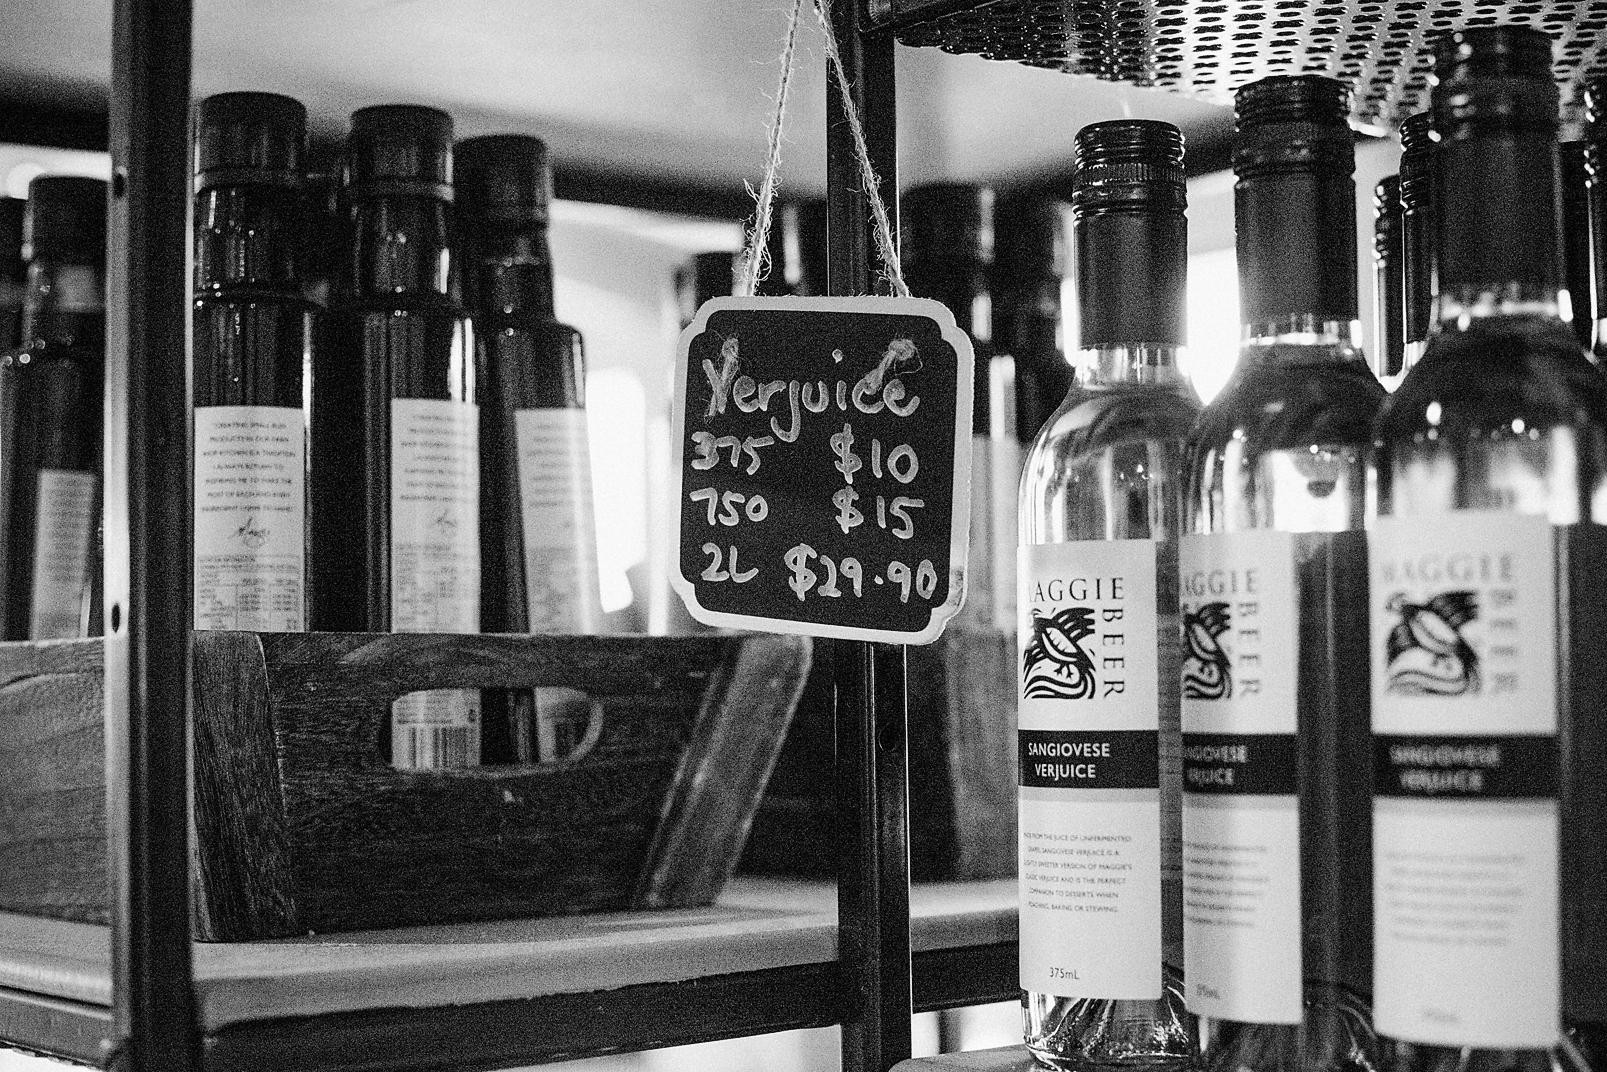 Daily Verjuice demonstration at 2 pm … go on - you know you want to ;)